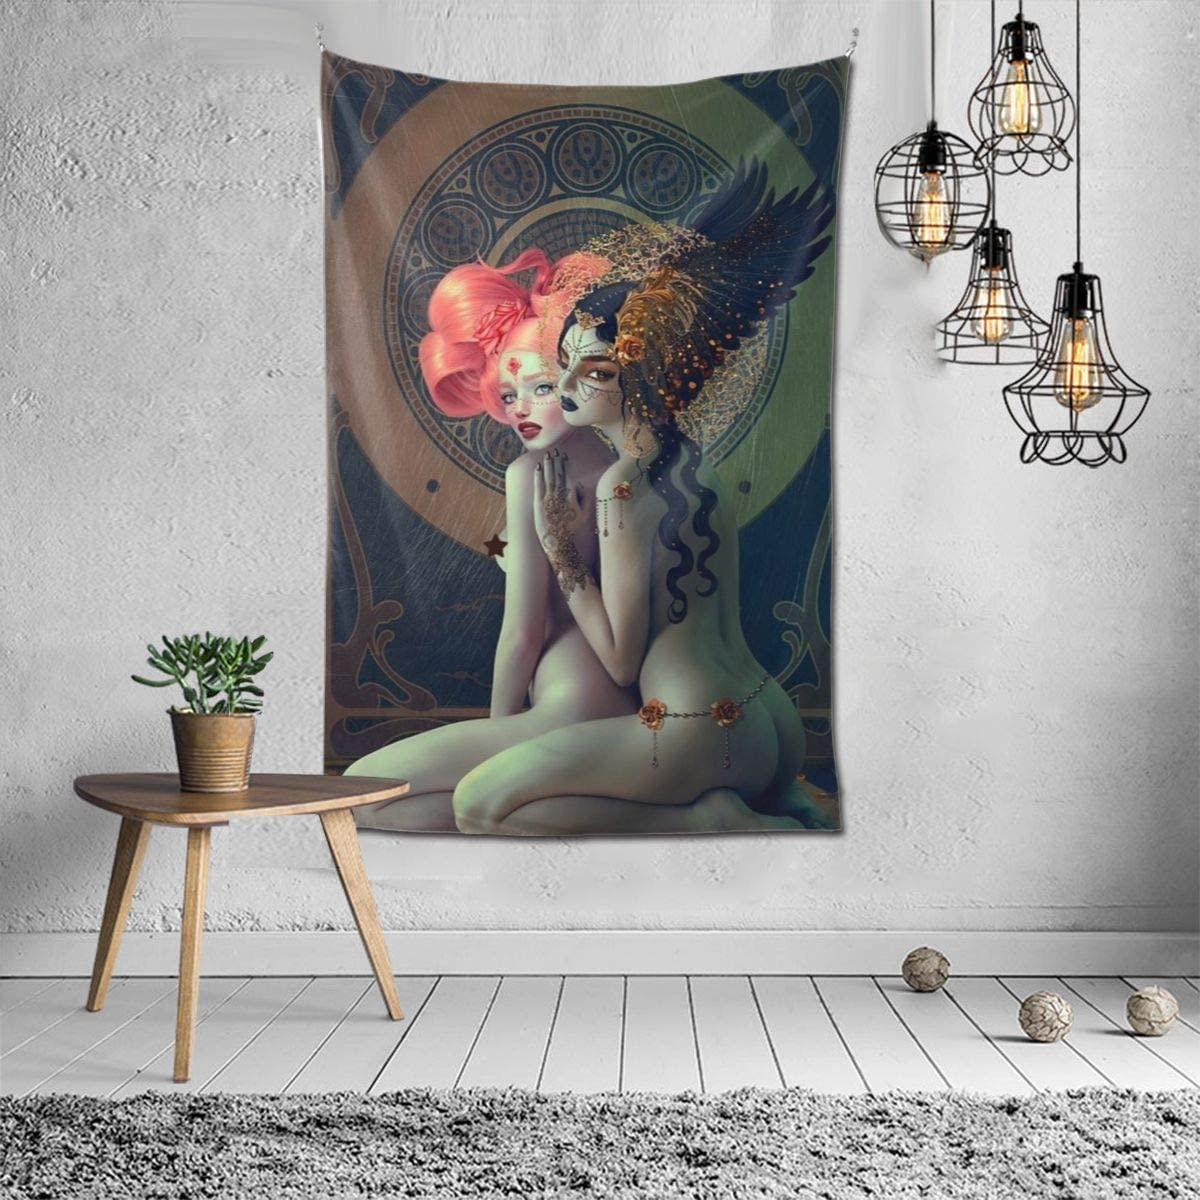 Hippie Hippy Wall Tapestry Lesbian Girls Pride Art Ombre Tapestry Wall Hanging Throw Tapestries for Bedroom Dorm Accessories Mandala Yoga Mat Rugs Wall Tapestries